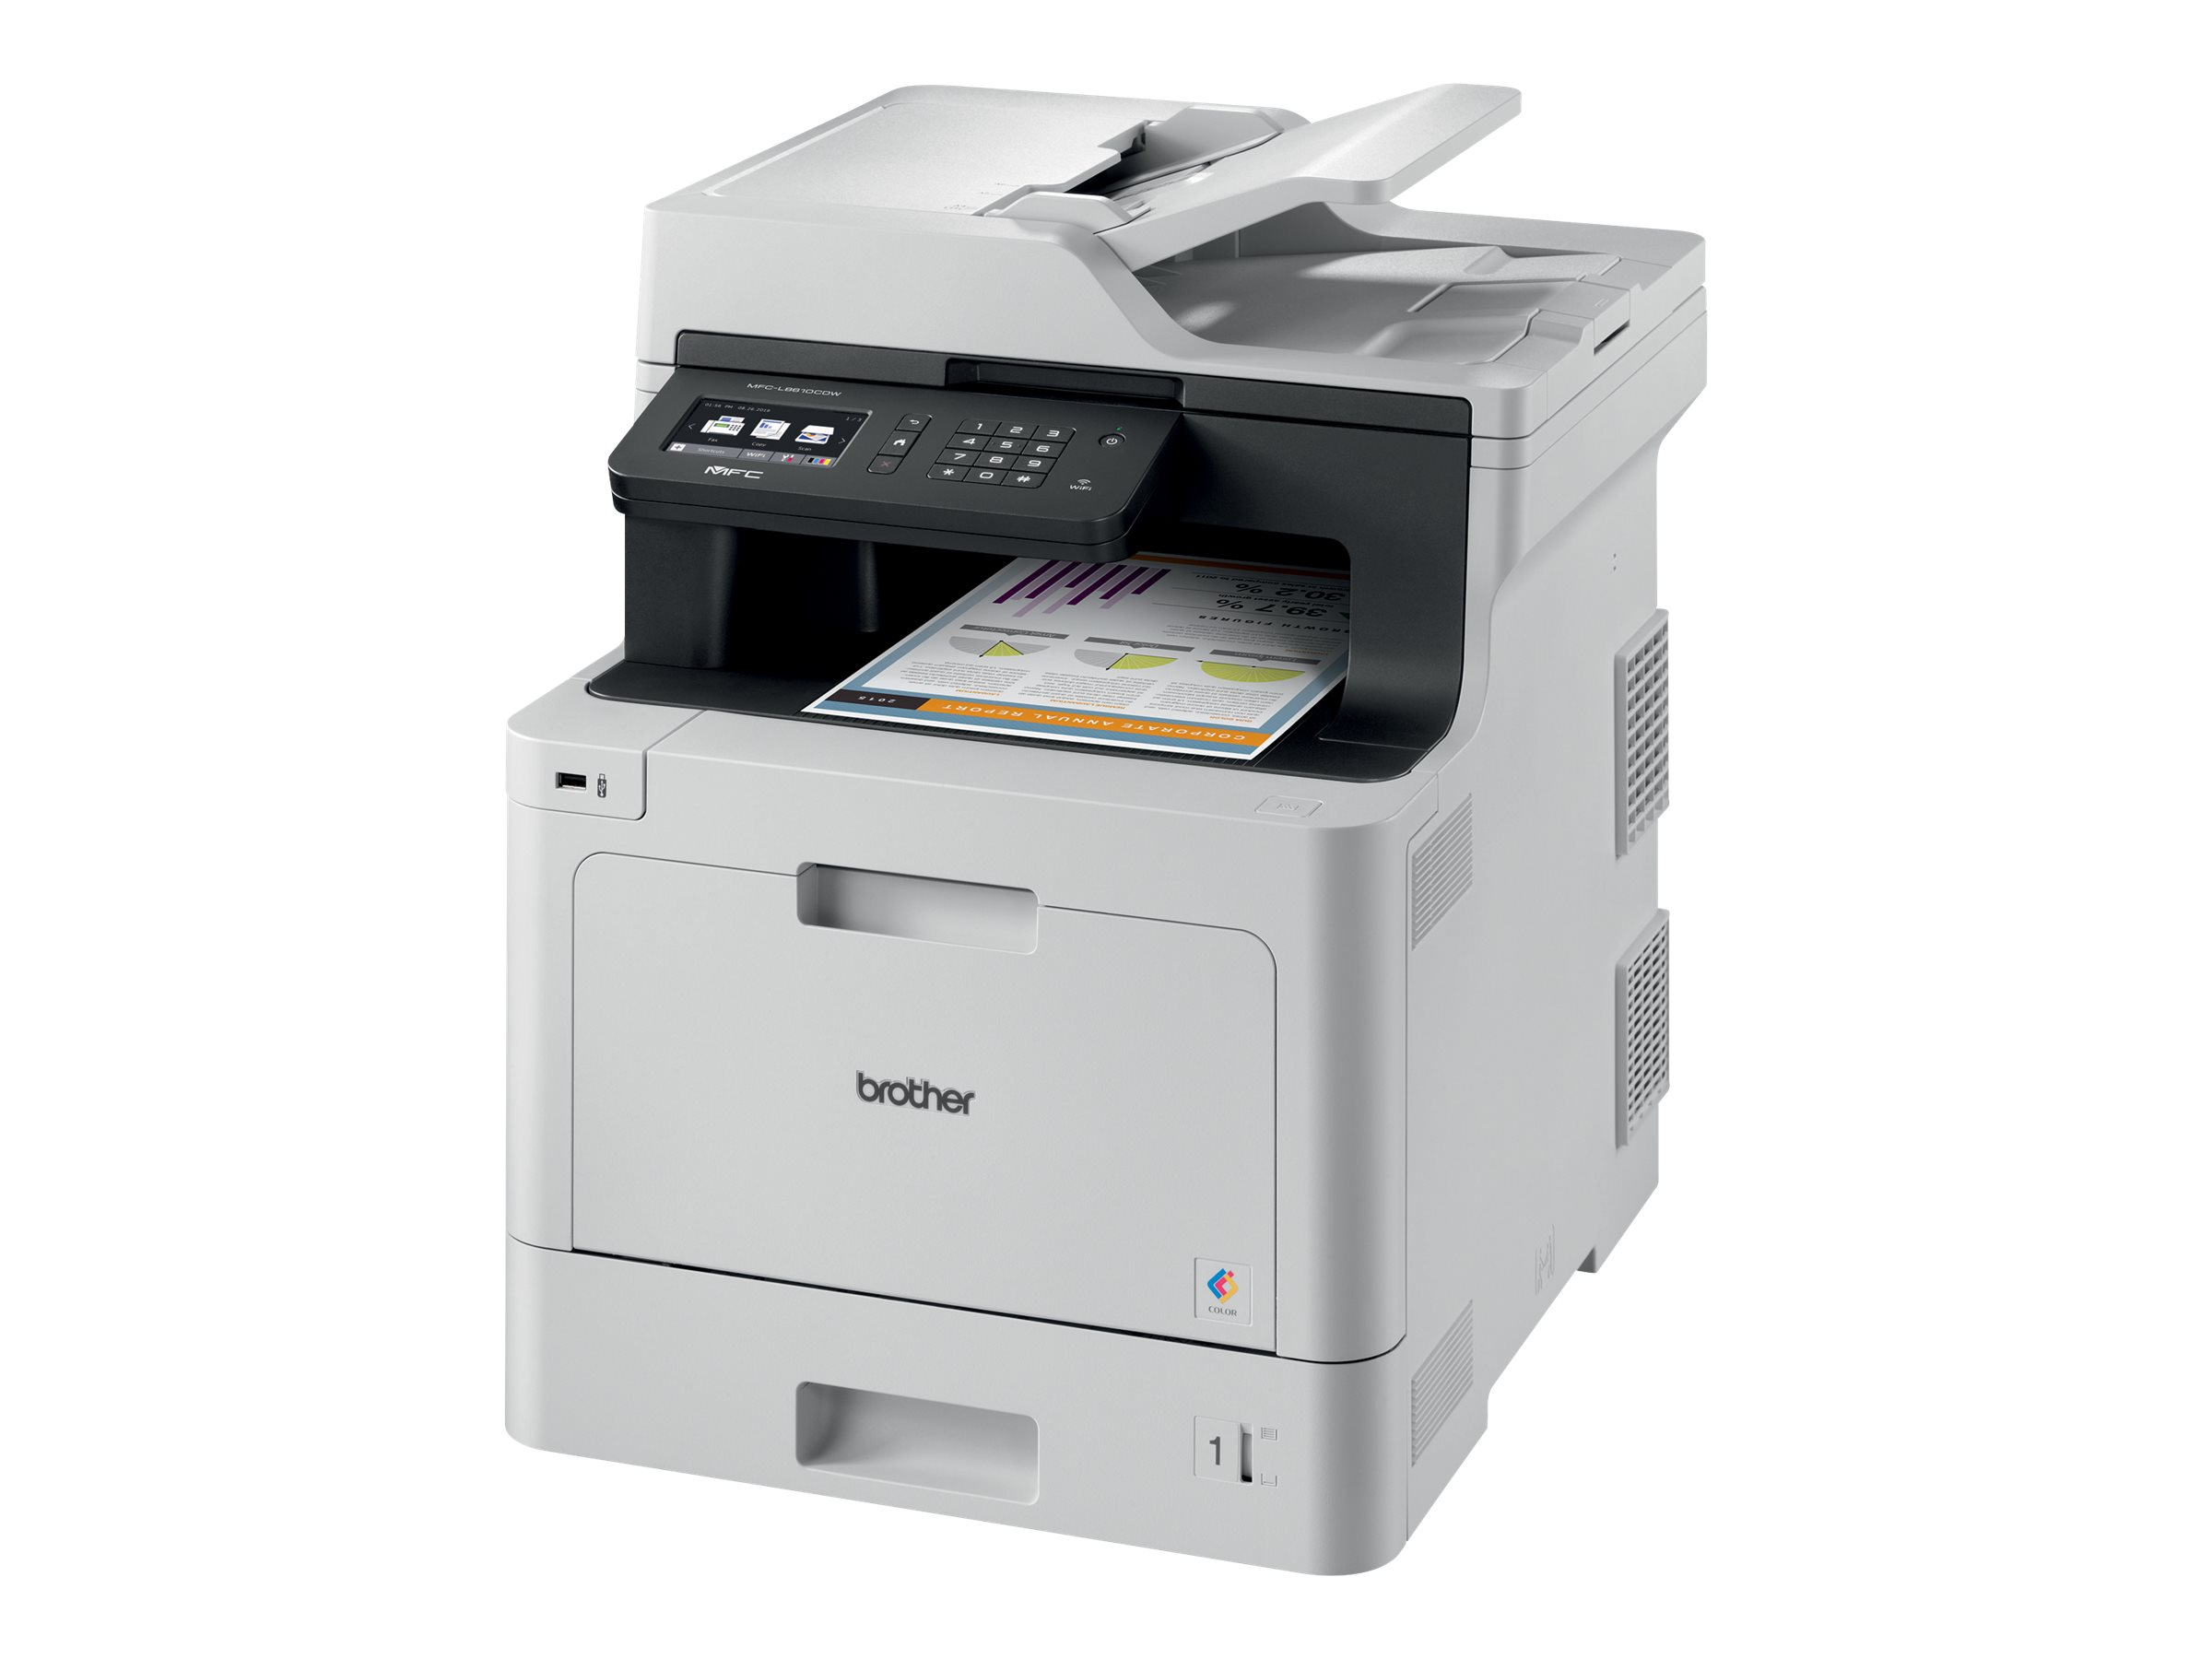 Brother MFC-L8610CDW - multifunction printer - color